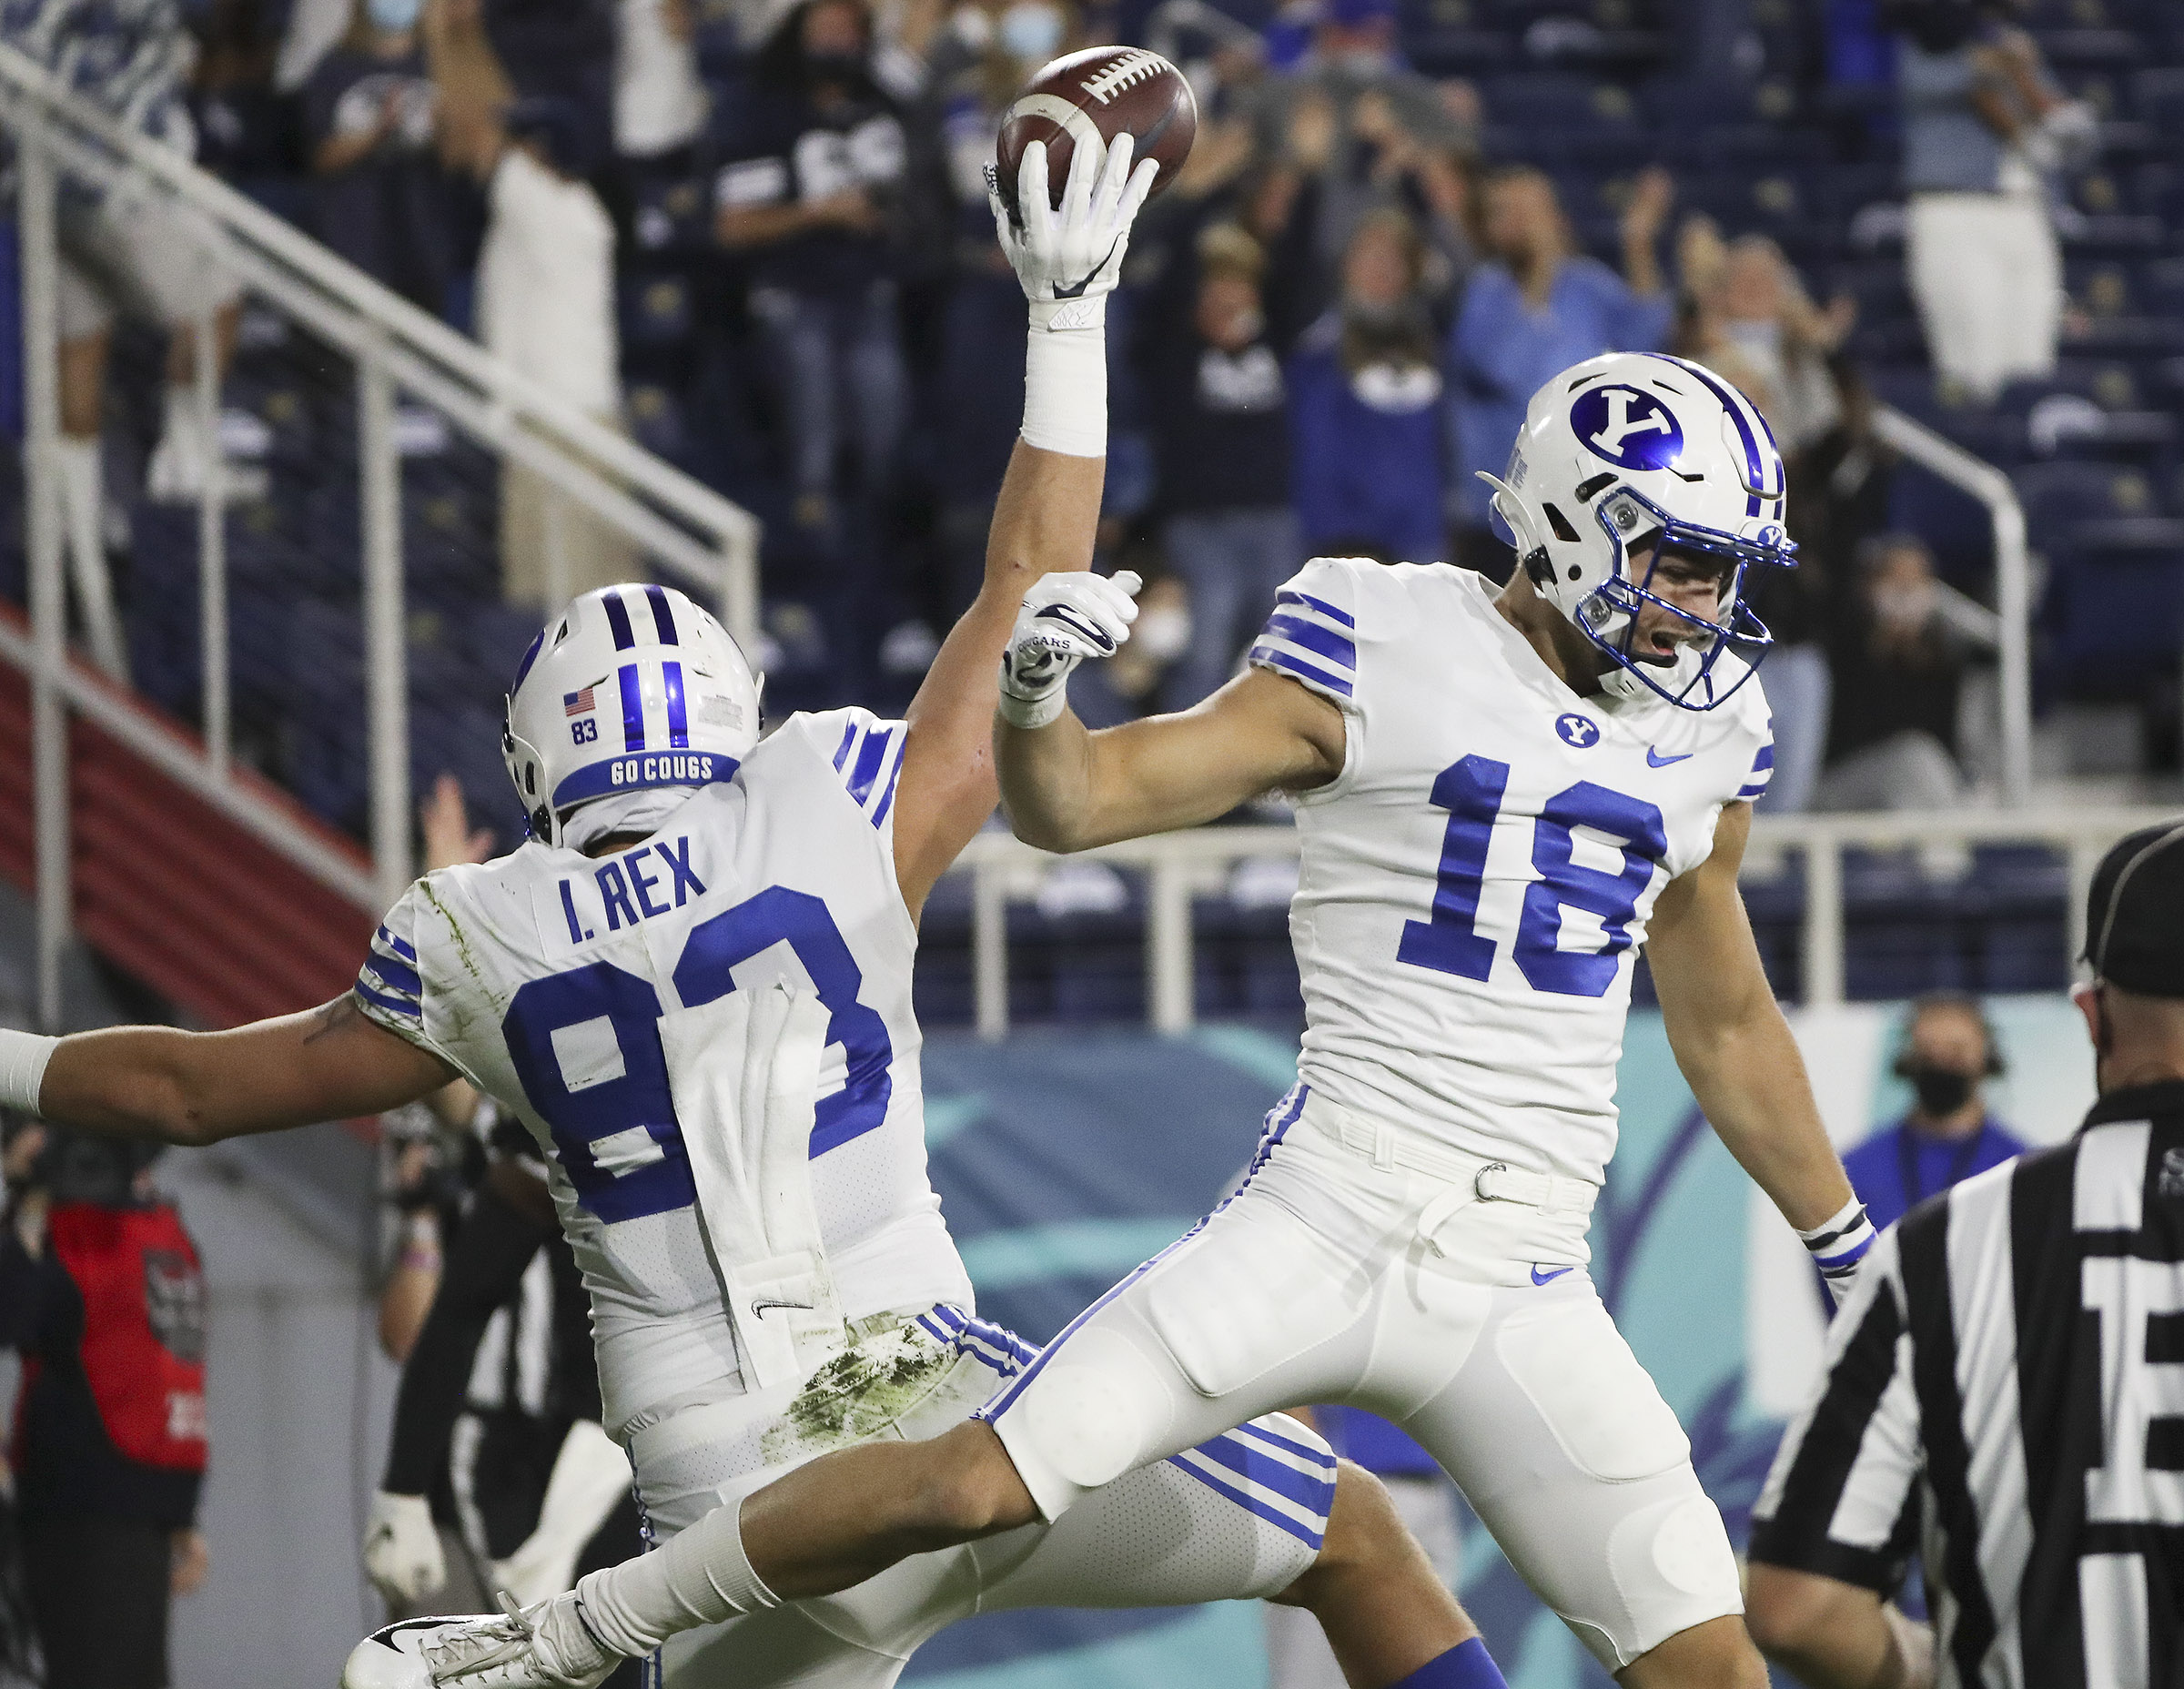 BYU tight end Isaac Rex celebrates his touchdown with BYU wide receiver Gunner Romney in Boca Raton, Florida.